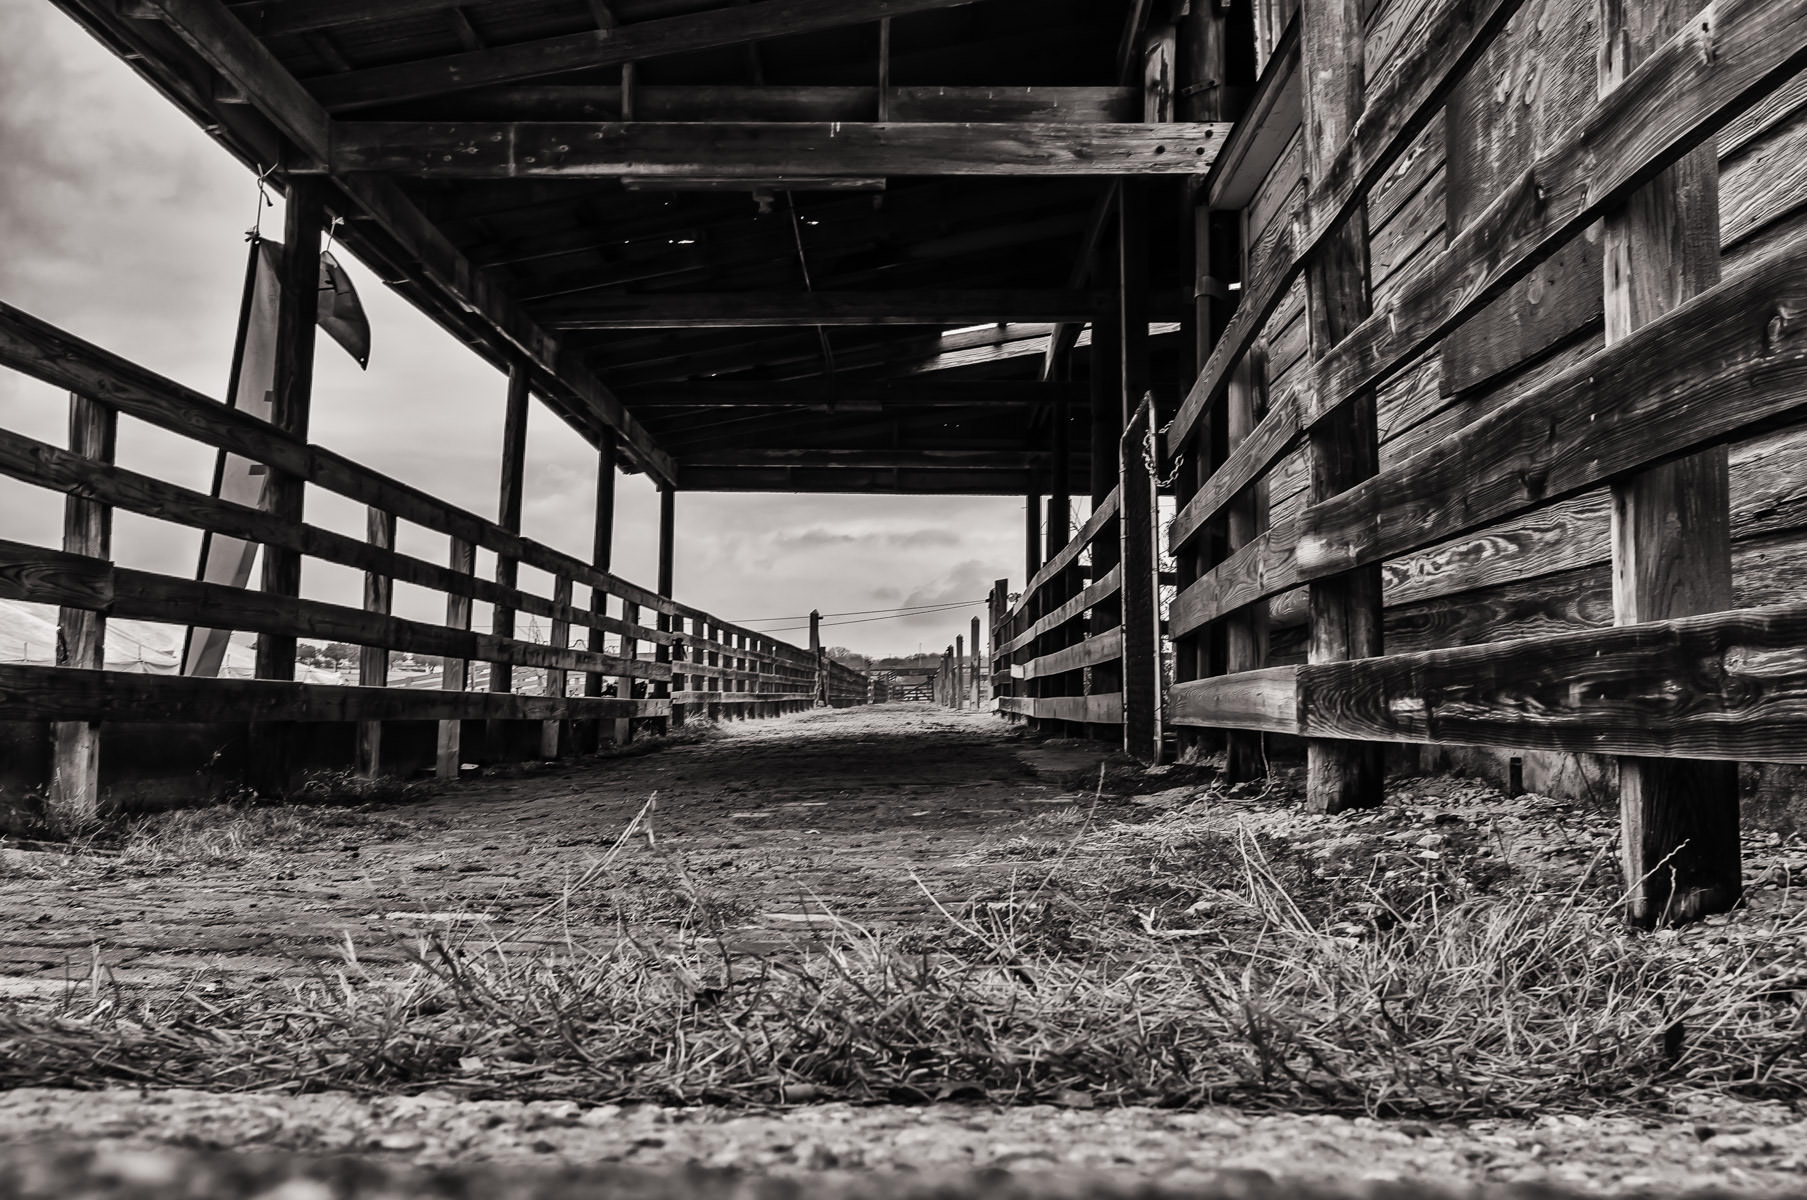 Wooden fences from an old cattle pen in Fort Worth, Texas' Stockyards District.